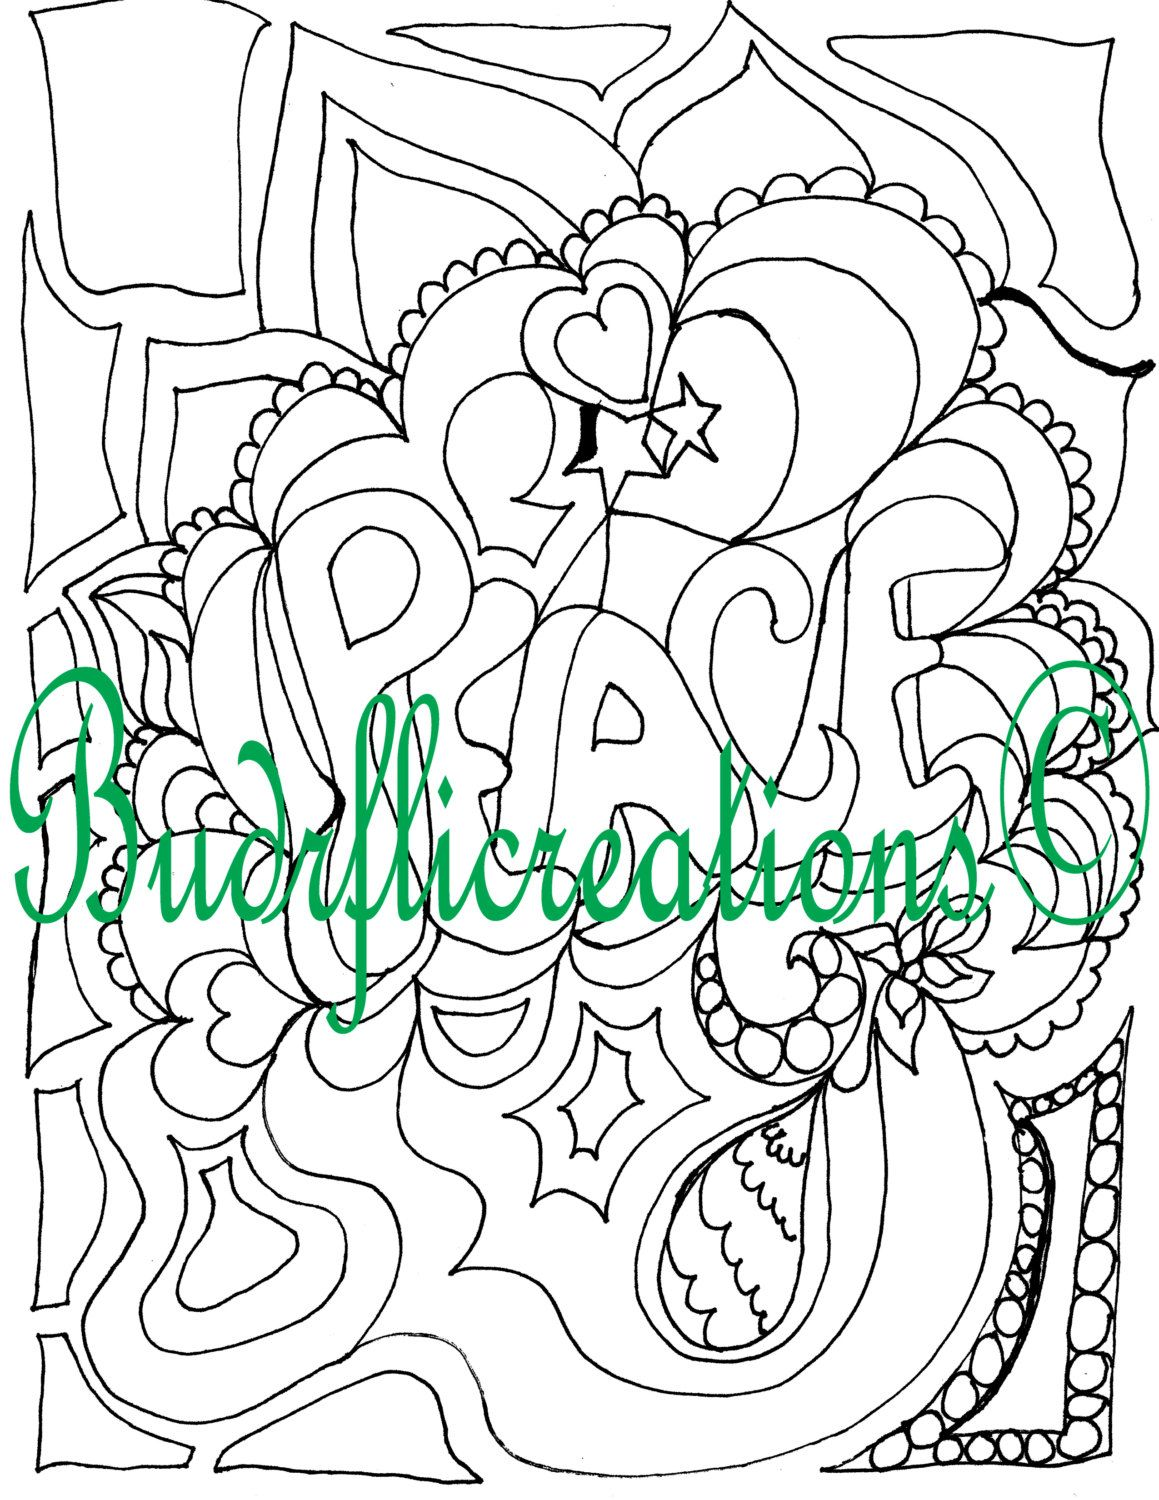 Peace Adult Coloring Page Inspirational Art Instant downloadable print Fruits of the Spirit by Budrflicreations on Etsy